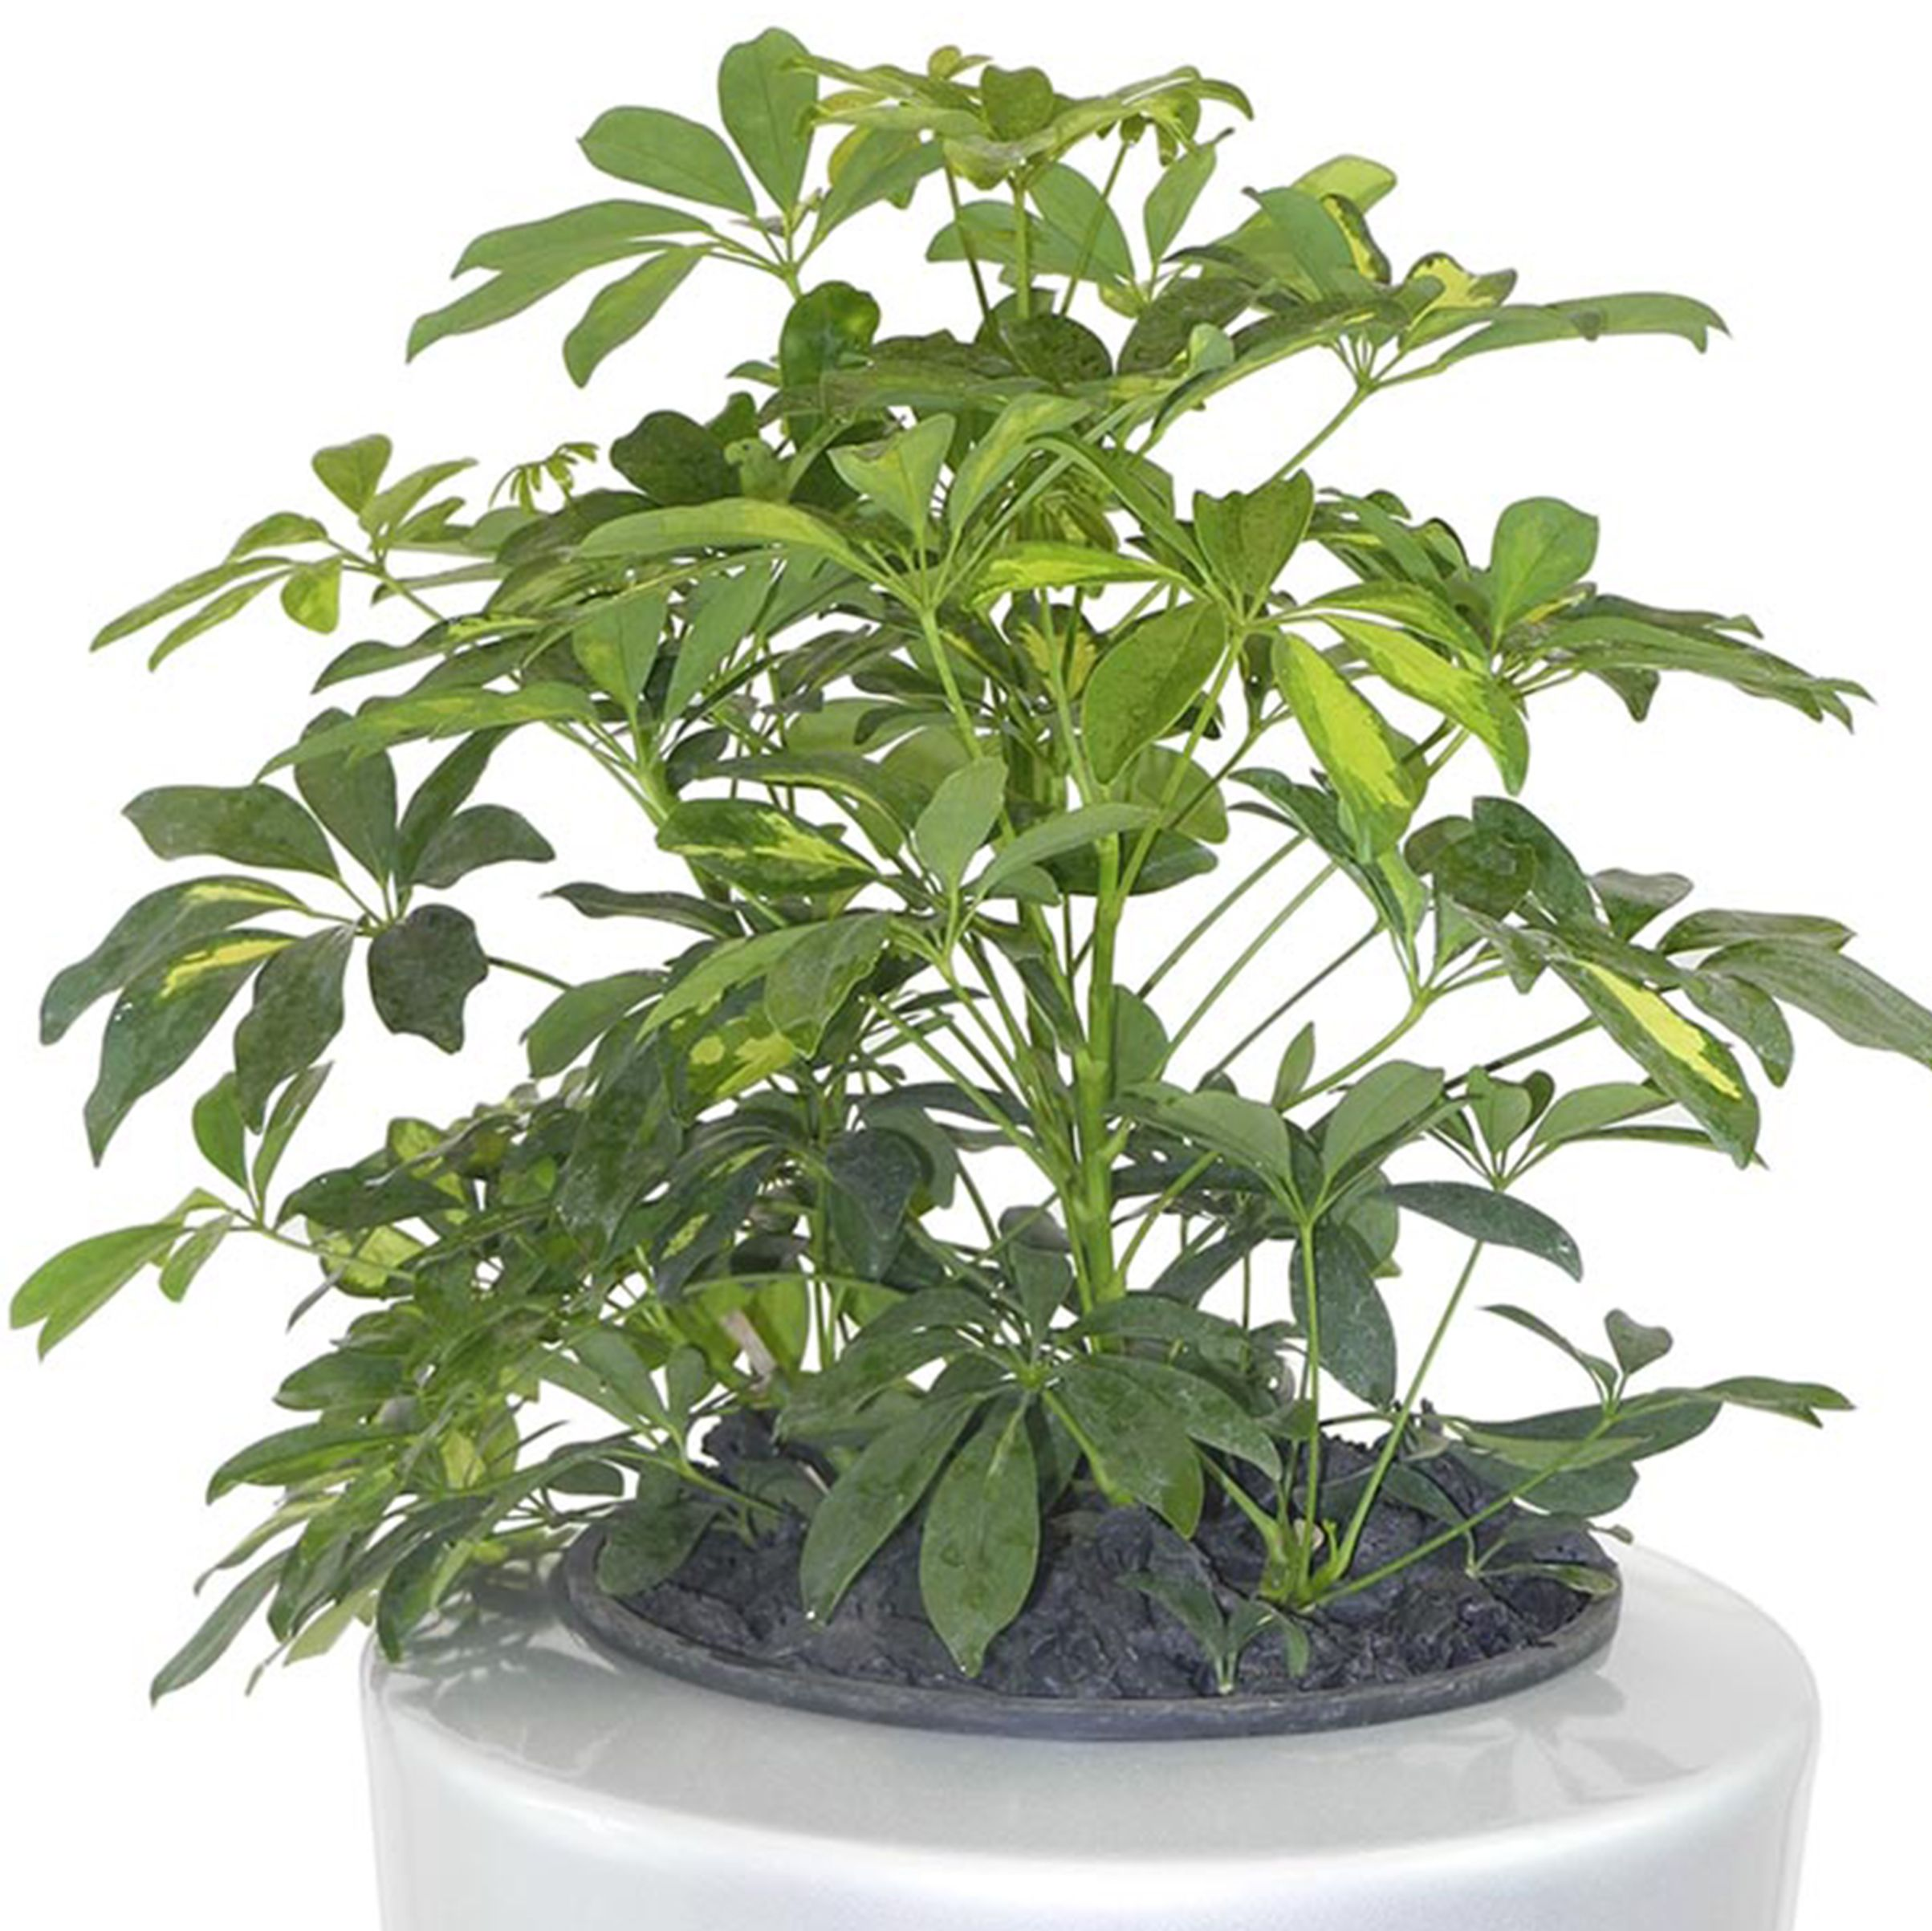 Schefflera arboricola dwarf umbrella tree office for Schefflera arboricola